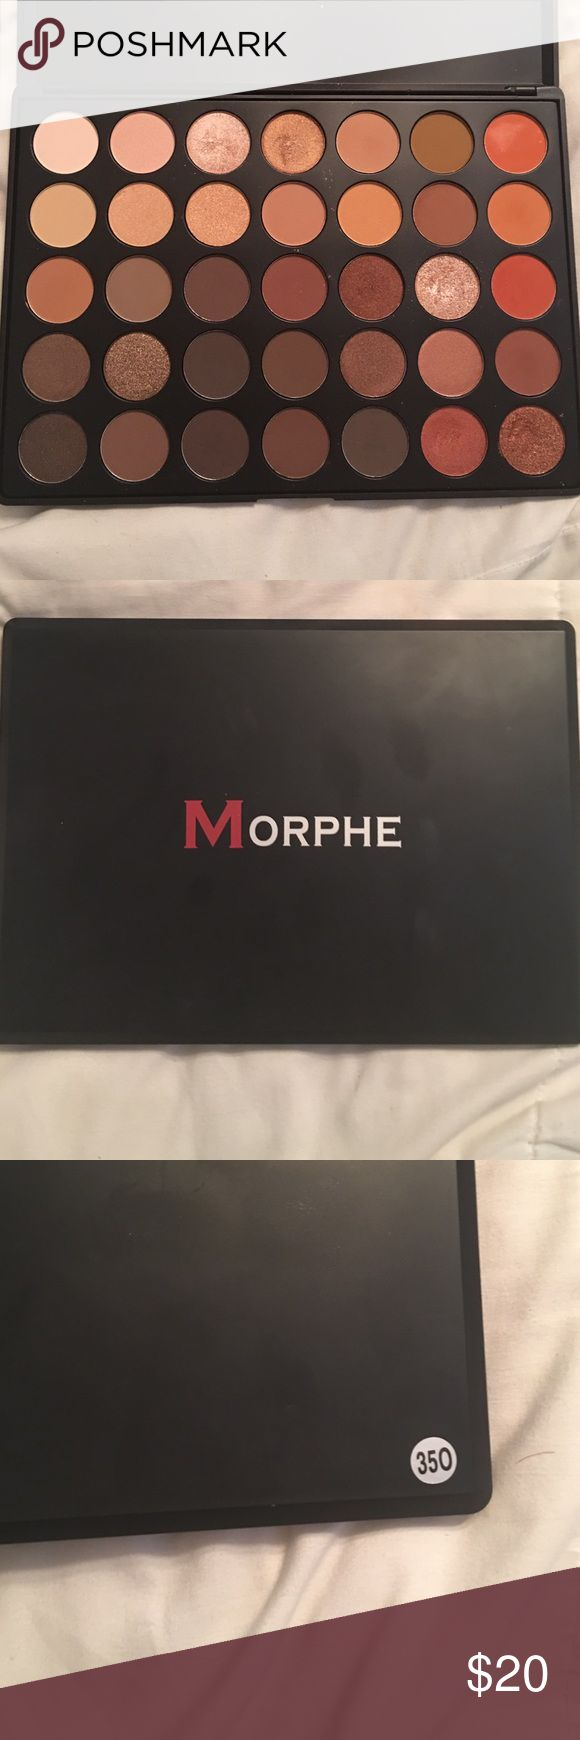 MORPHE 350 palette. Original Morphe 350 palette. Used only a couple of times but still loads of product!!! My renaissance palette has replaced this palette basically. NO TRADES. PRICE FIRM Morphe Makeup Eyeshadow